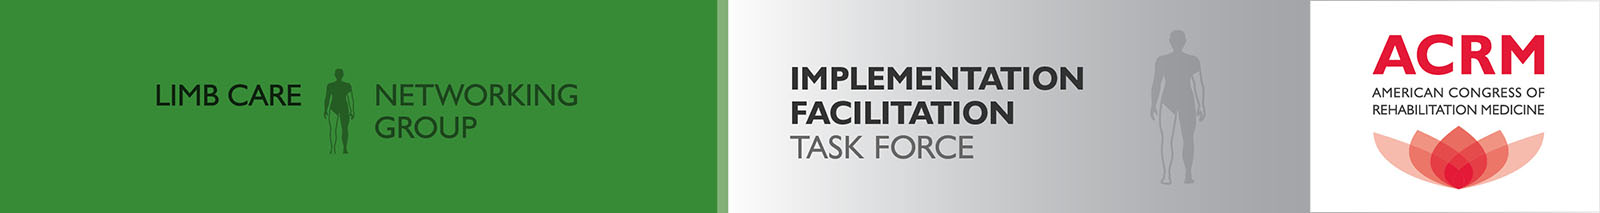 Limb Care Networking Group IMPLEMENTATION FACILITATION TASK FORCE